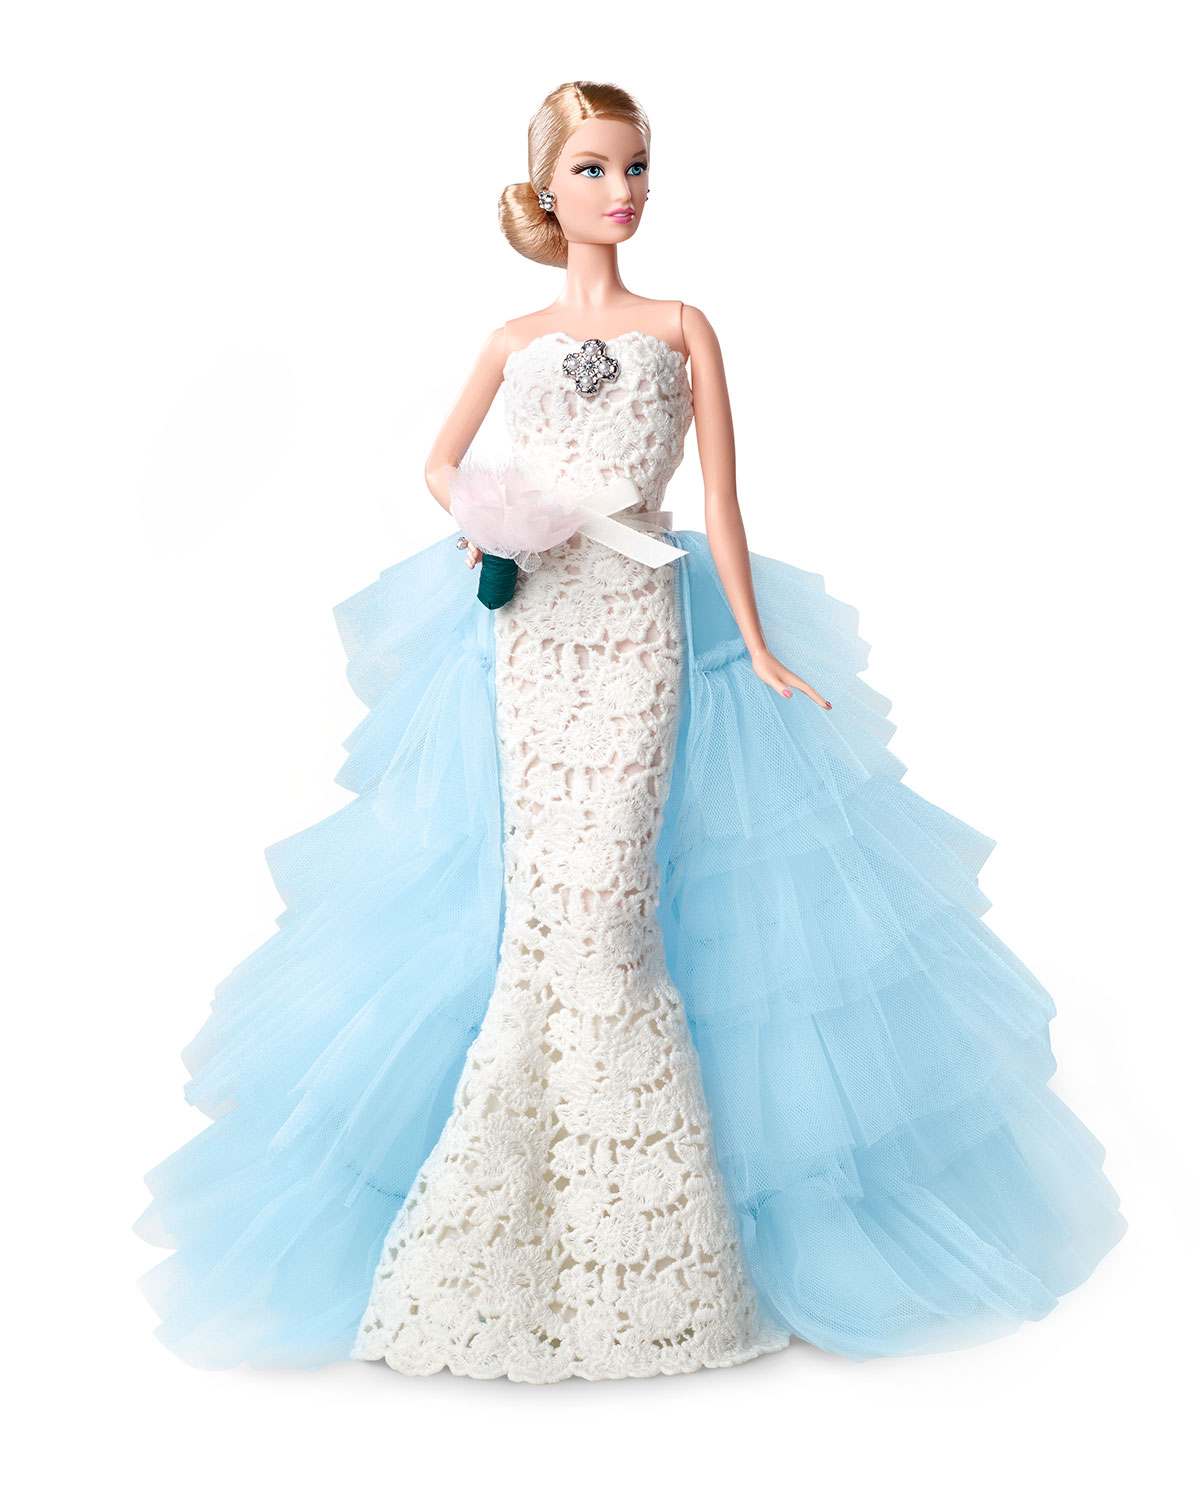 Oscar de la Renta Barbie® Bride Doll, White/Blue